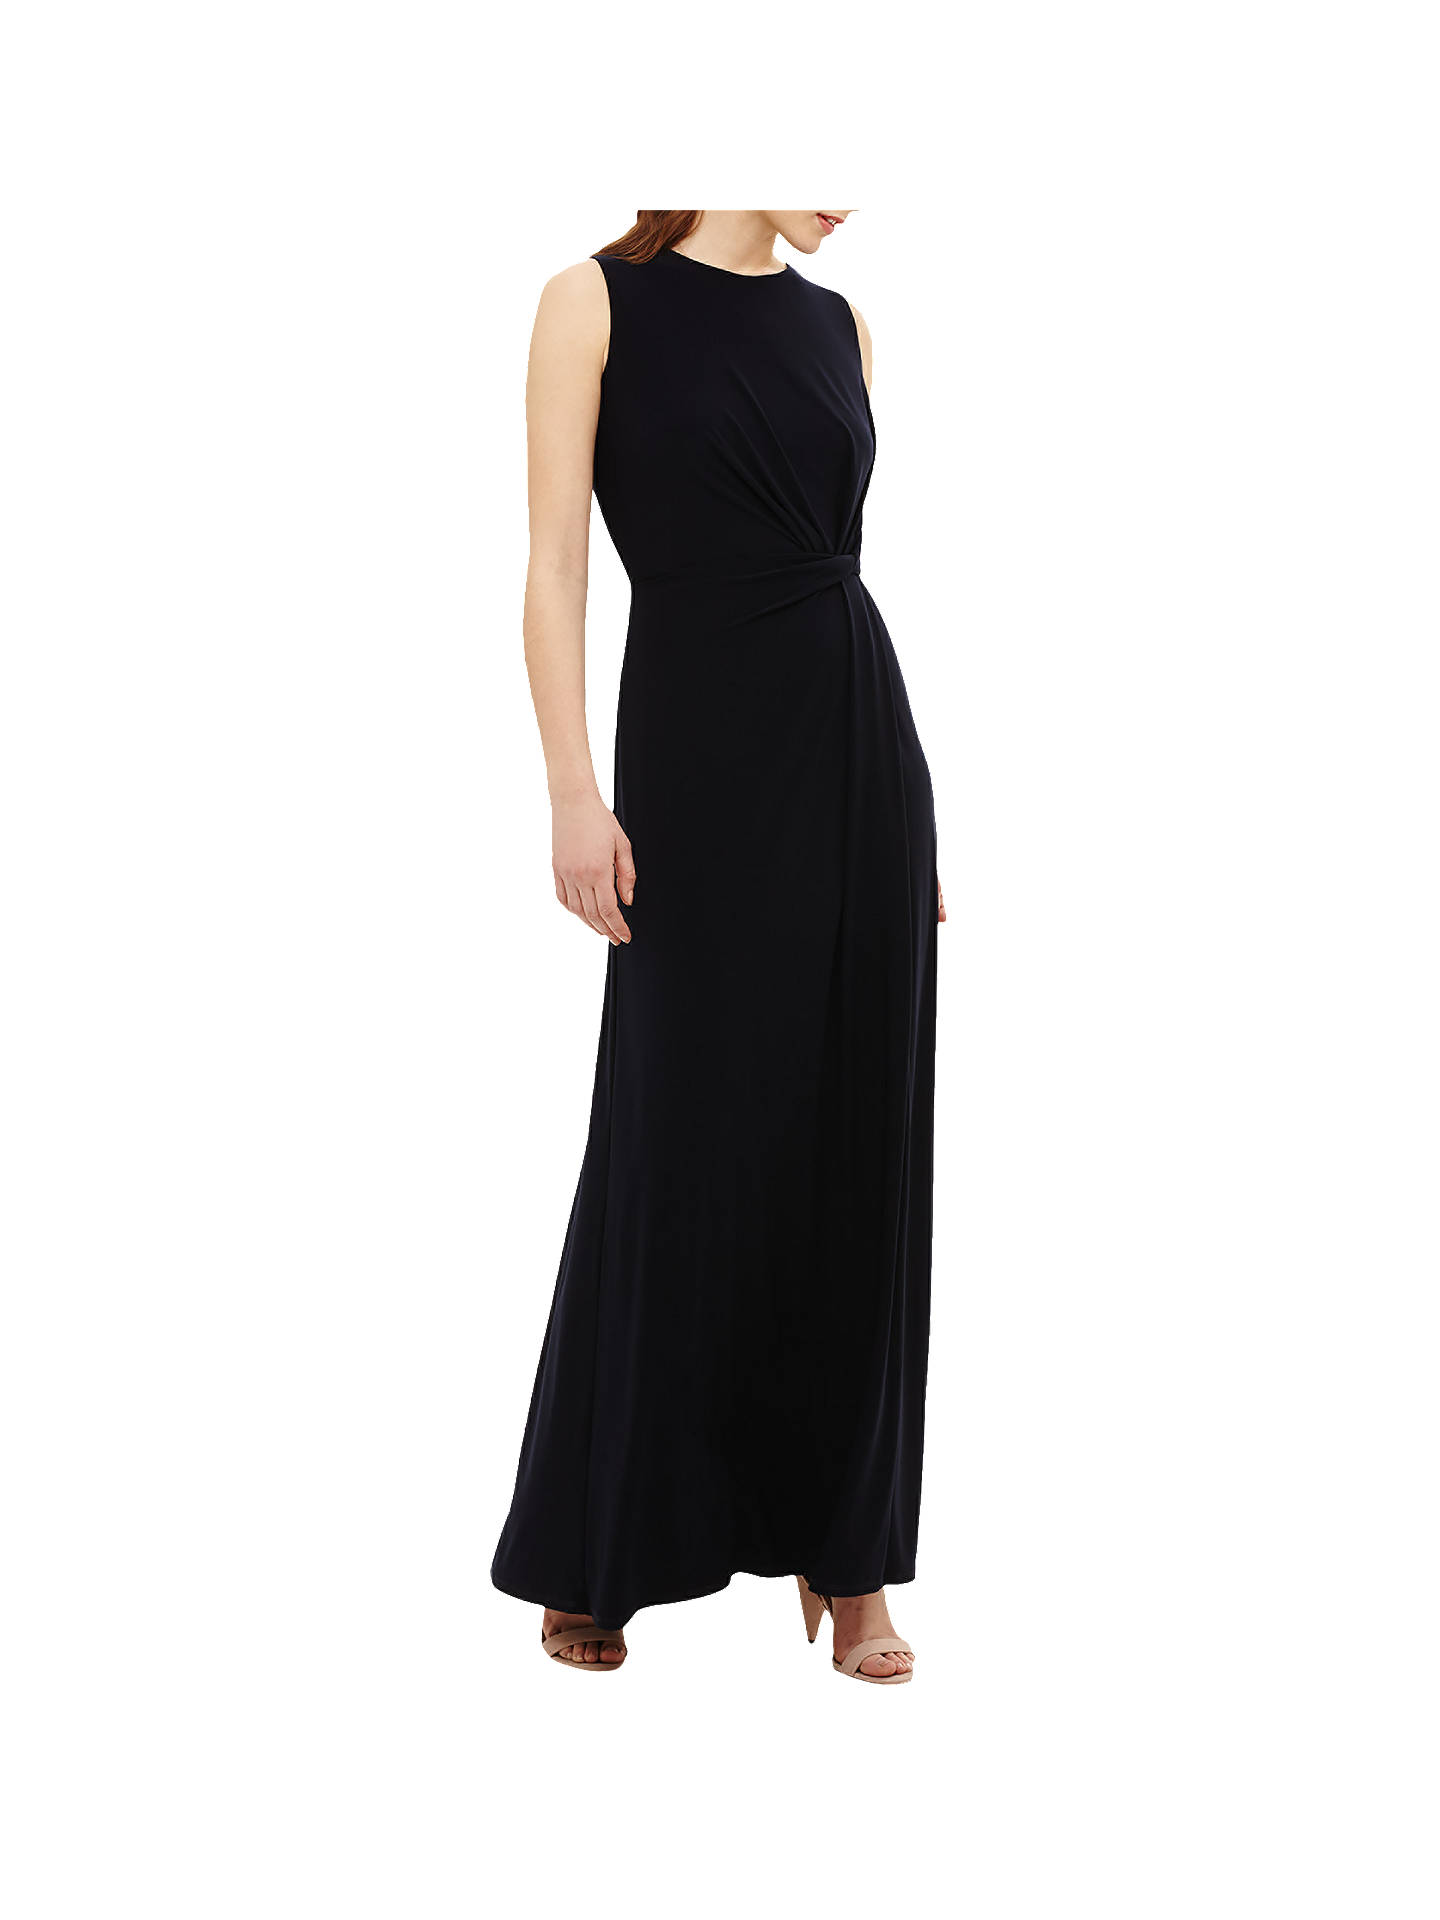 6f3ffbe209b Buy Phase Eight Carrie Jersey Maxi Dress, Navy, 6 Online at johnlewis.com  ...